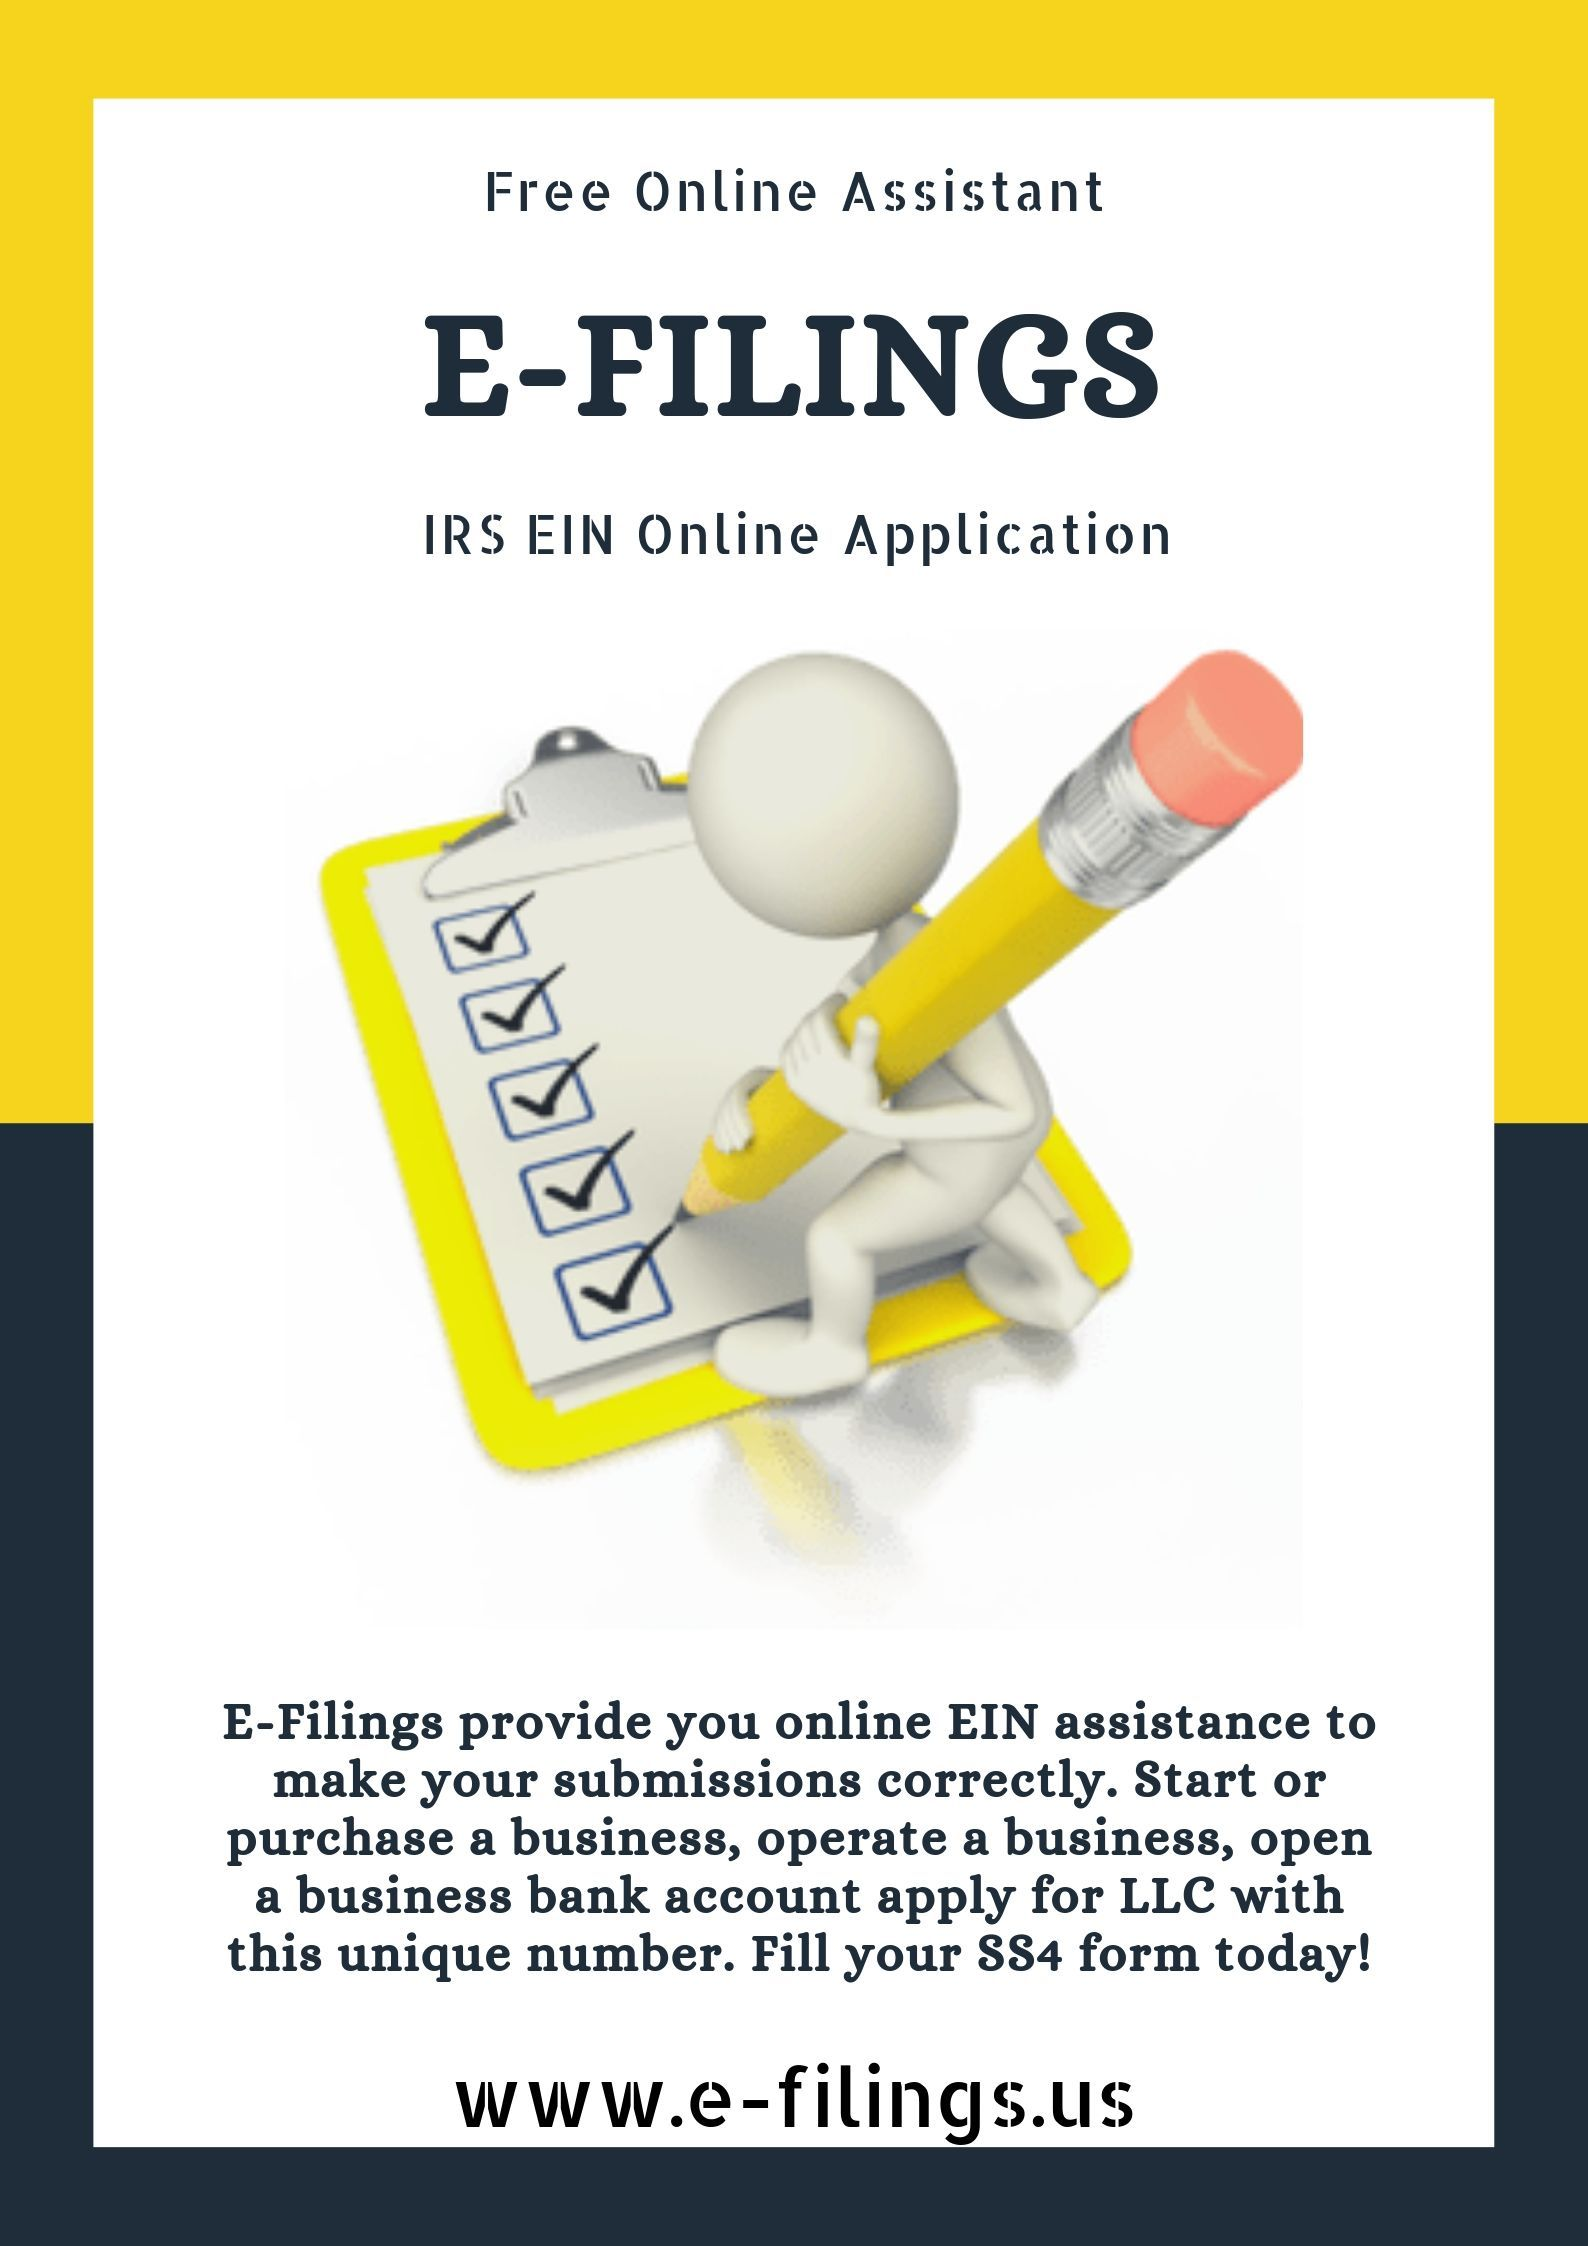 E filings provides you with an easy way to retrieve